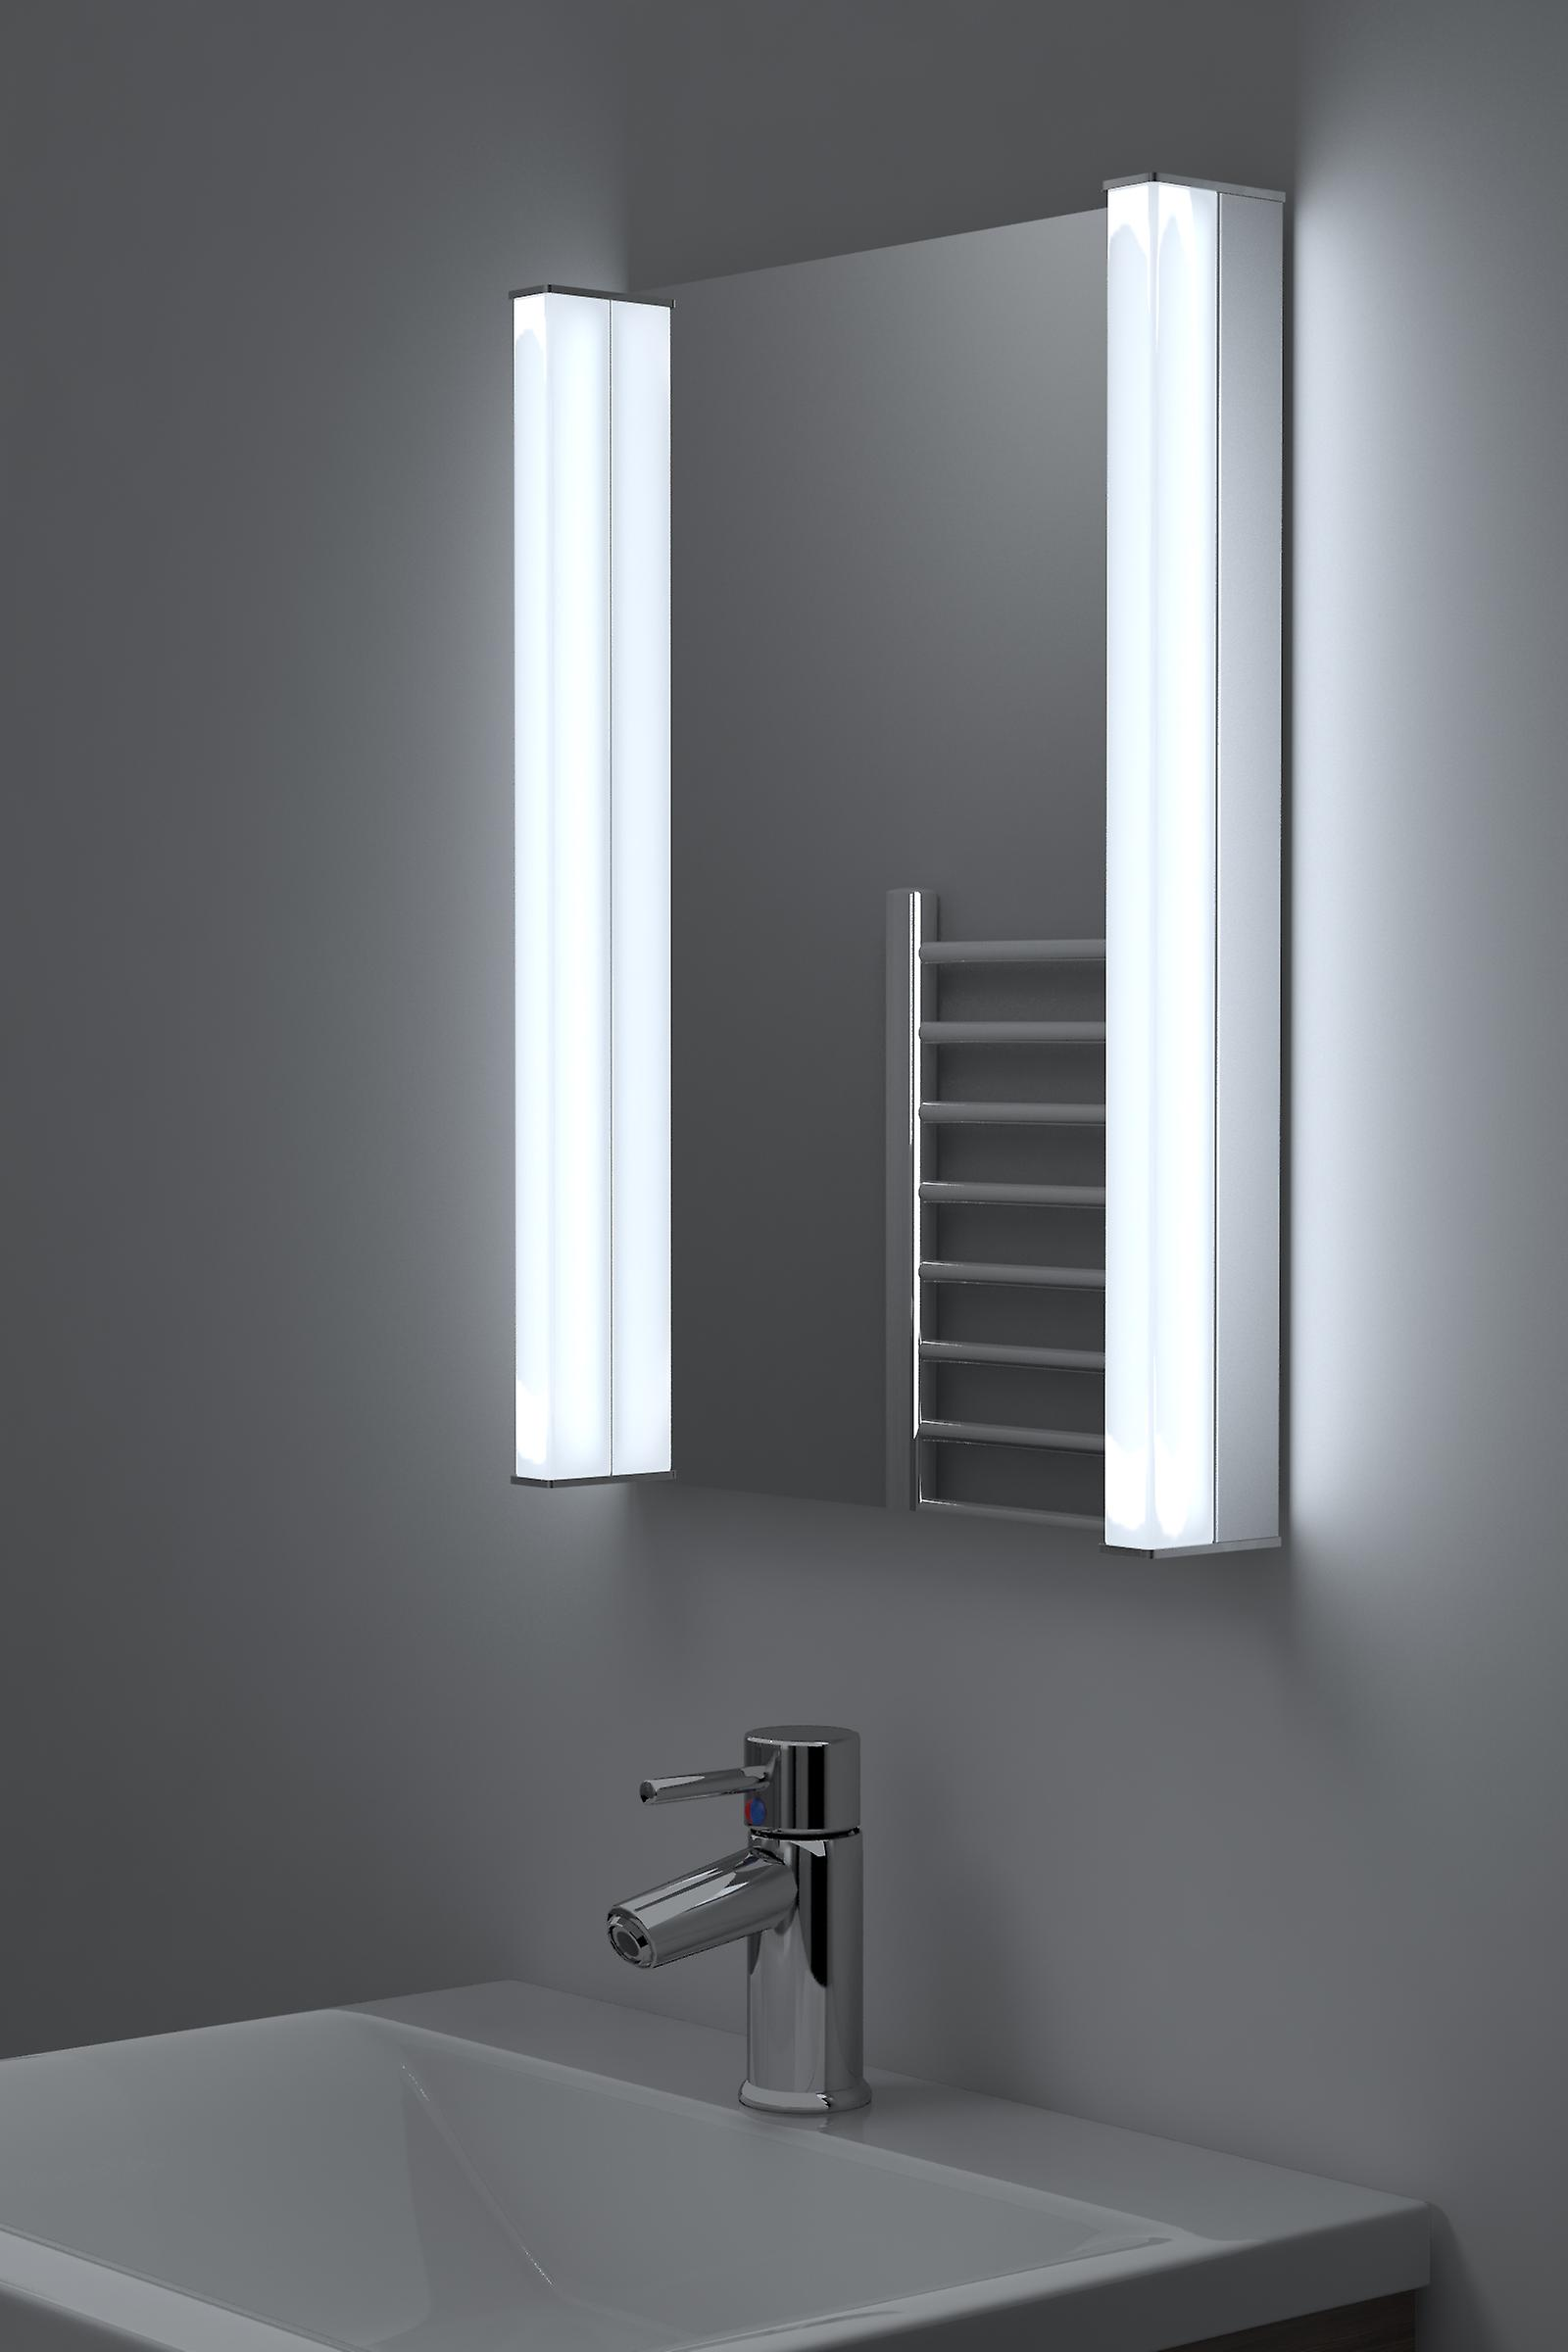 Super Bright RGB K196 Bathroom Mirror With Demist Shaver & Sensor